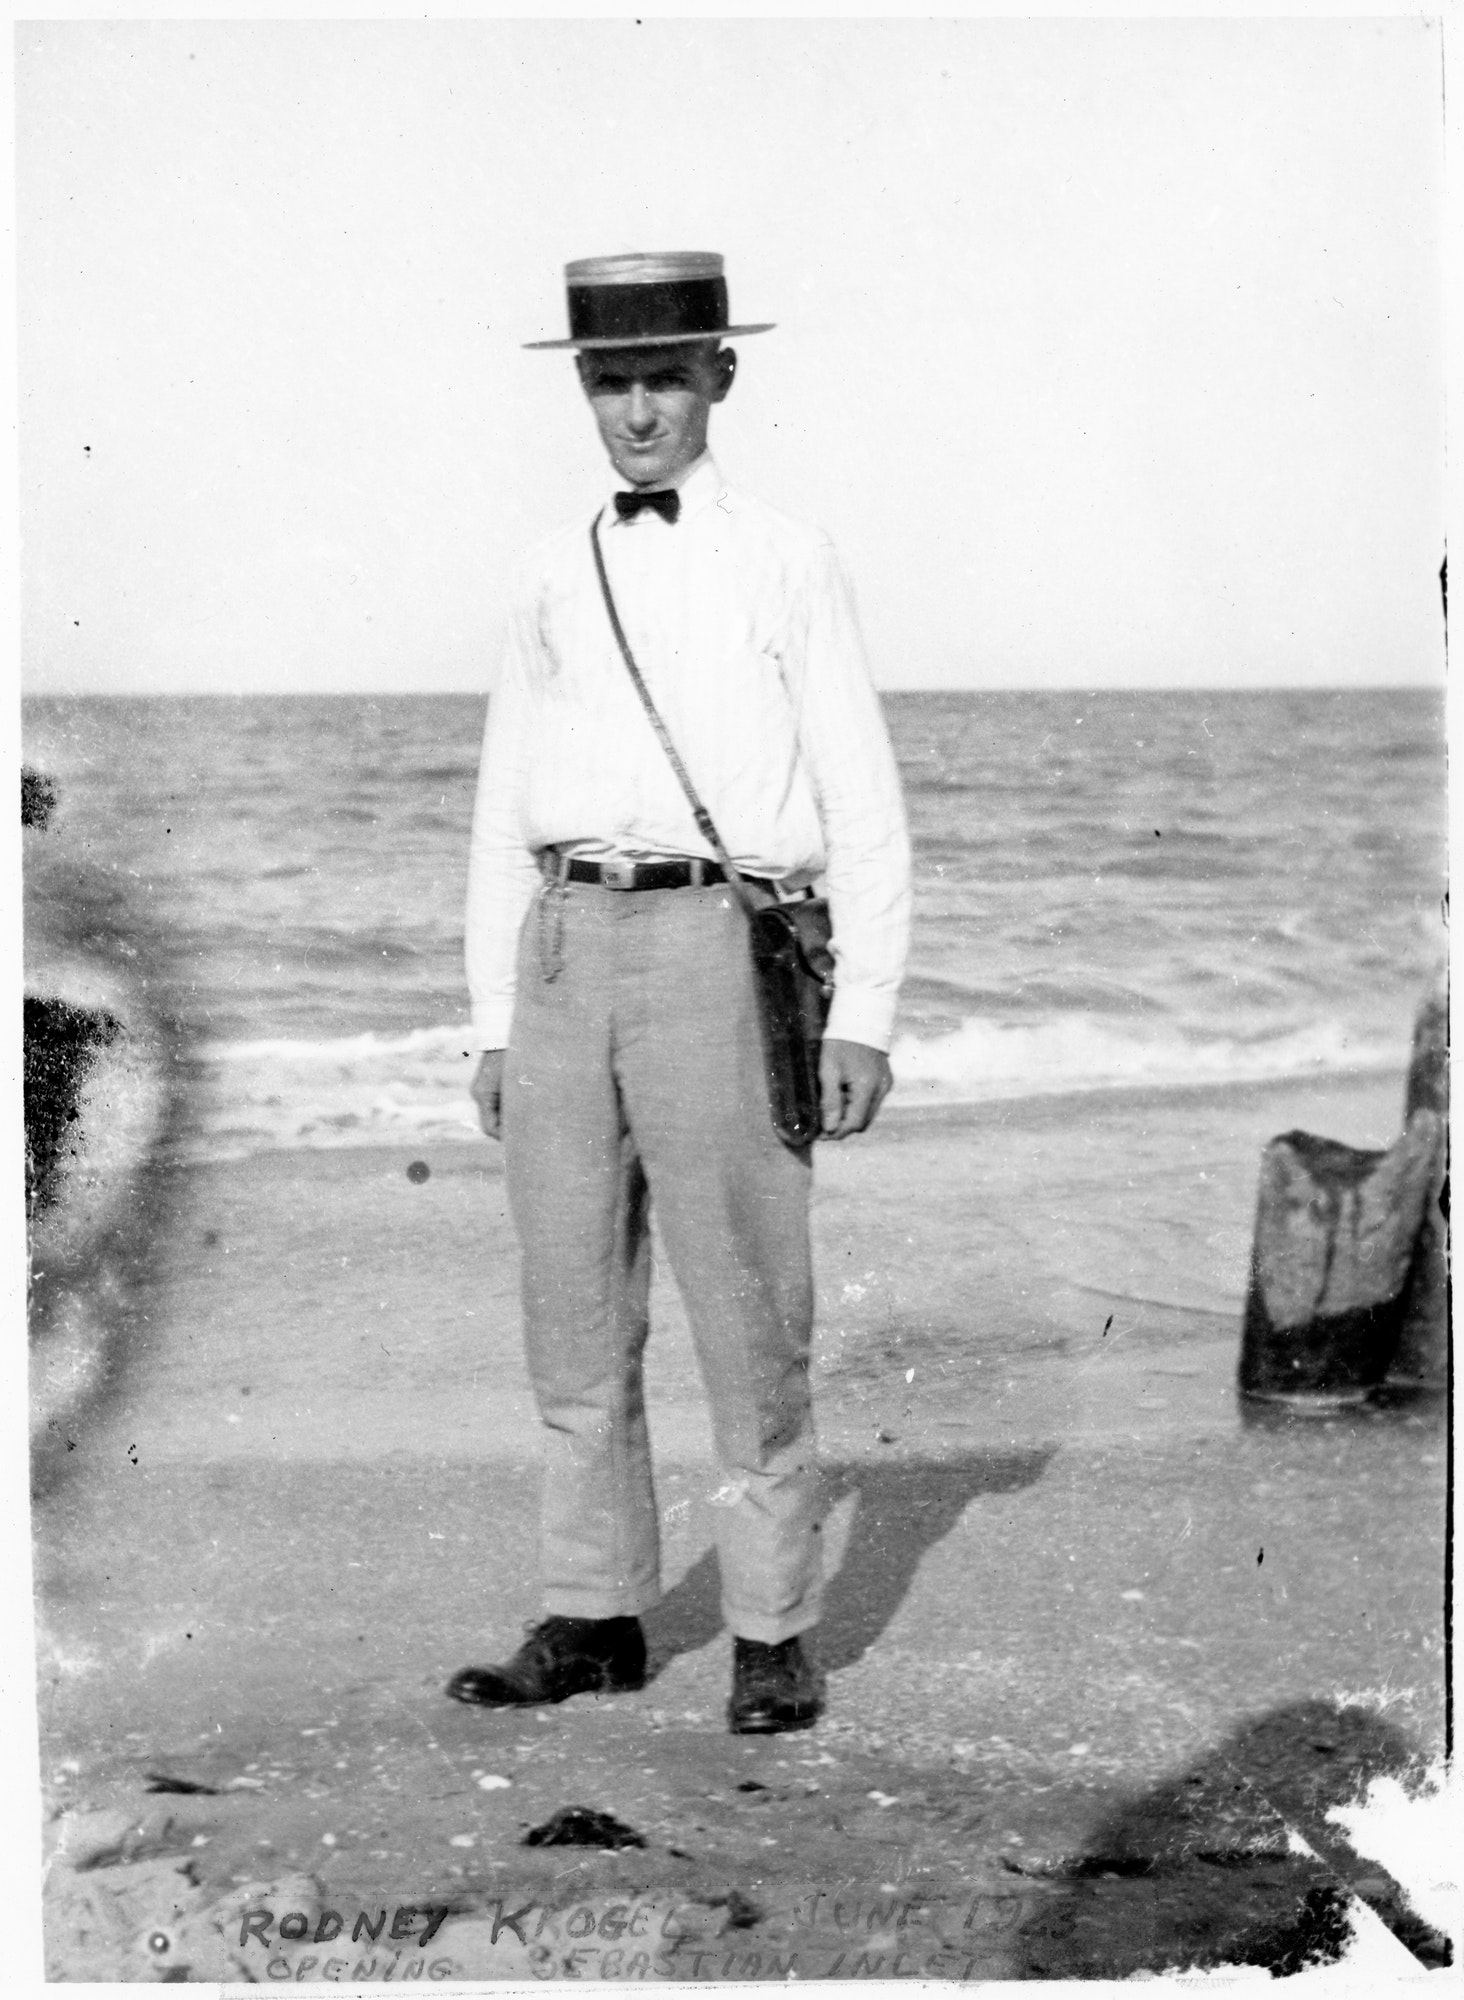 historical photo of Rodney Kroegel in 1923 at beach